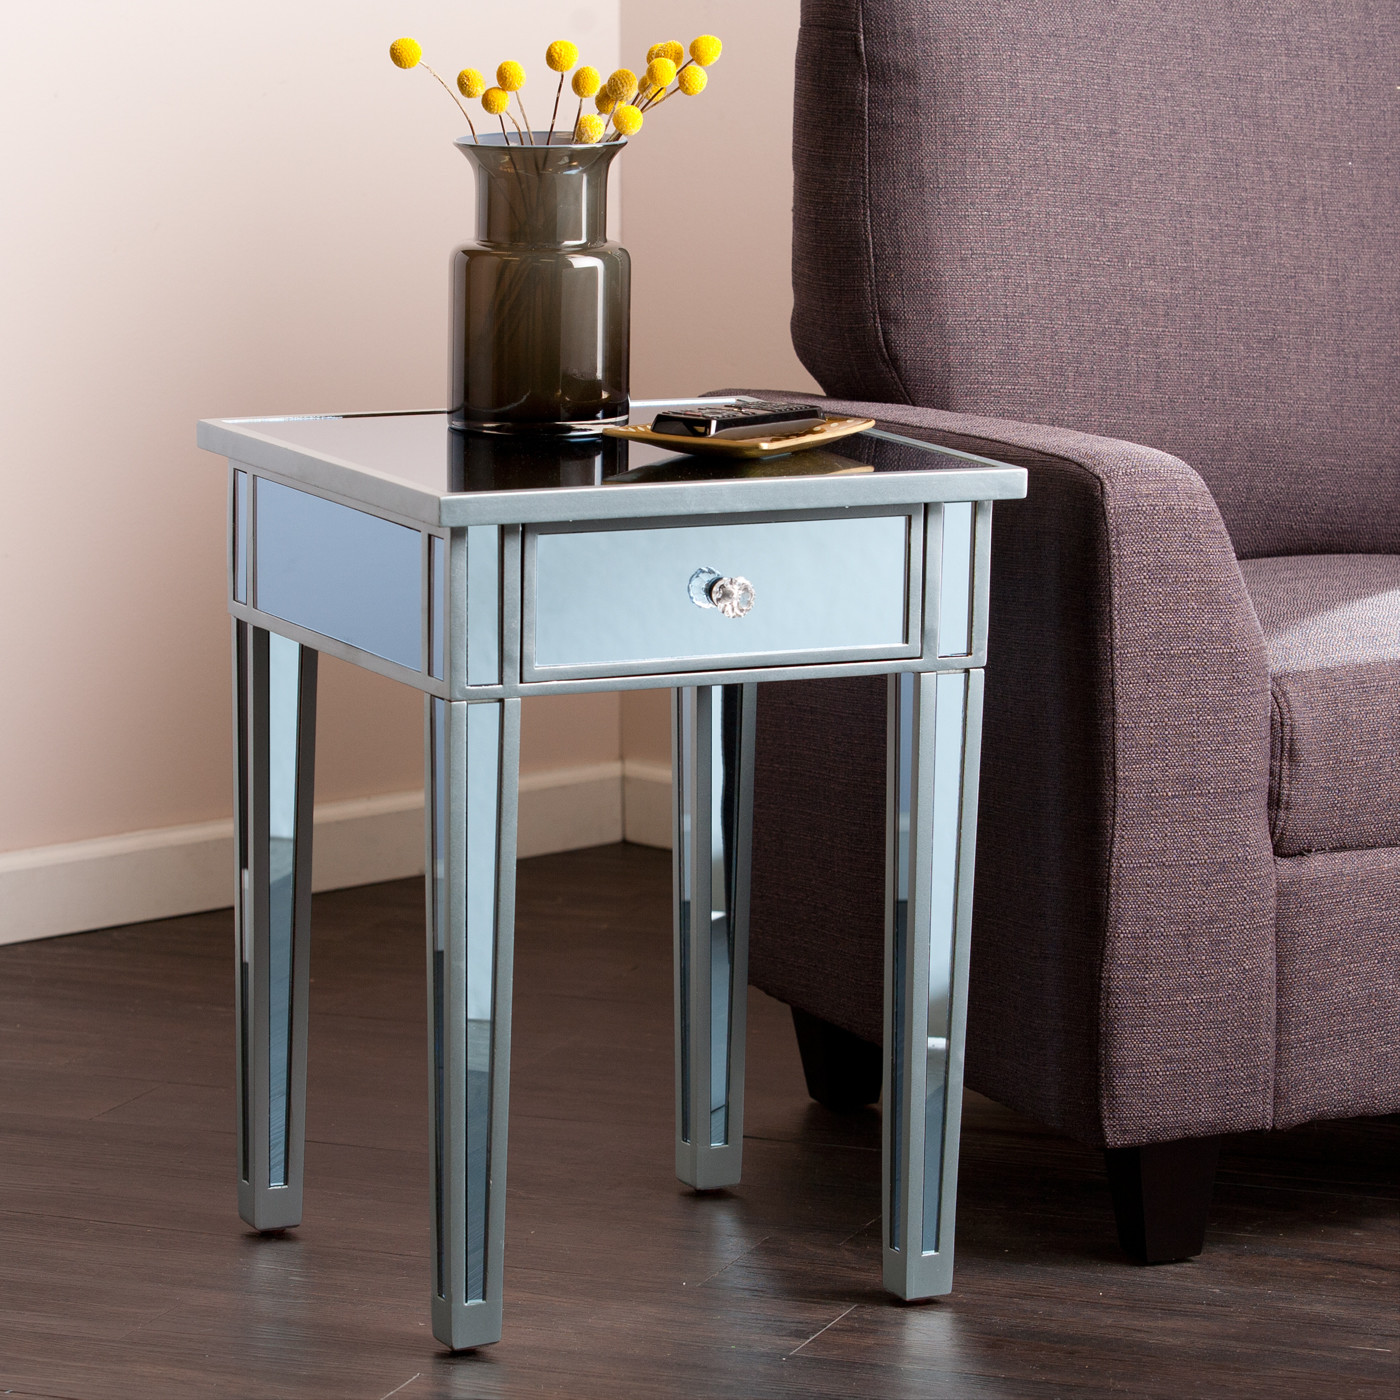 mirrored accent table hotel odaurze designs small plants black wrought iron patio end high cocktail tables barn door entertainment center very garden furniture threshold windham